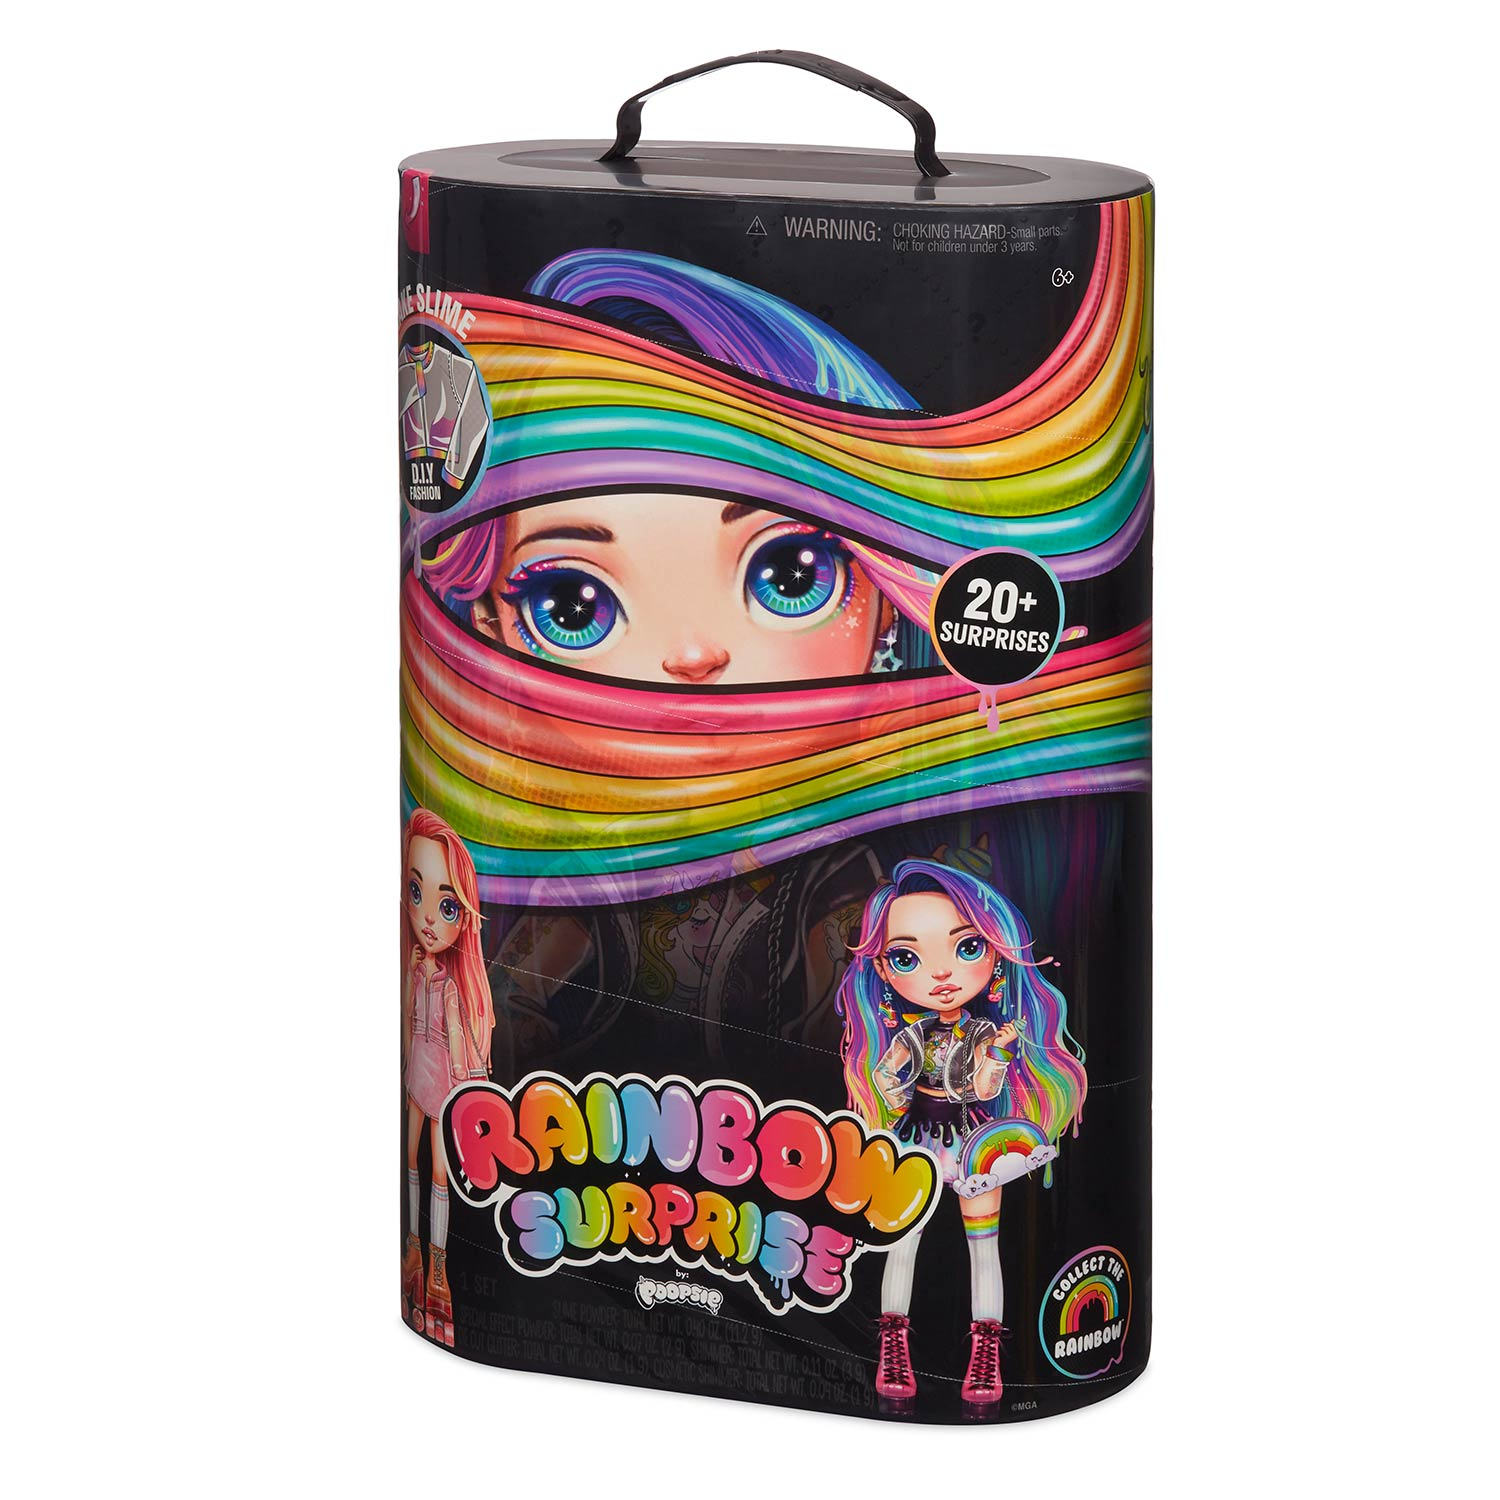 Poopsie Rainbow Surprise Pop - Pixie/Rainbow